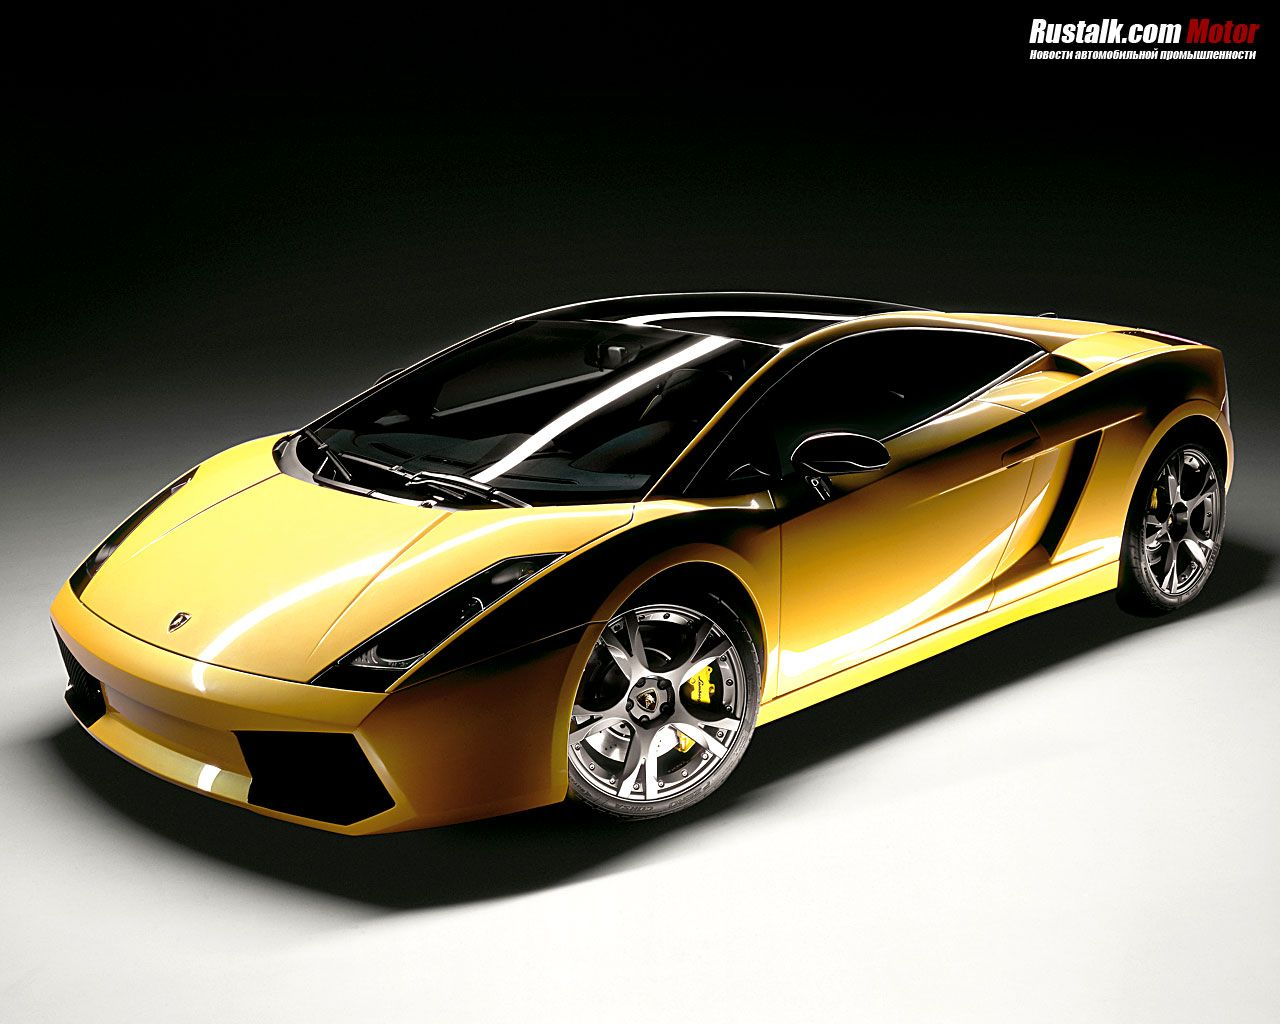 2030 lamborghini lamborghini wallpapers - Sports Cars 2030